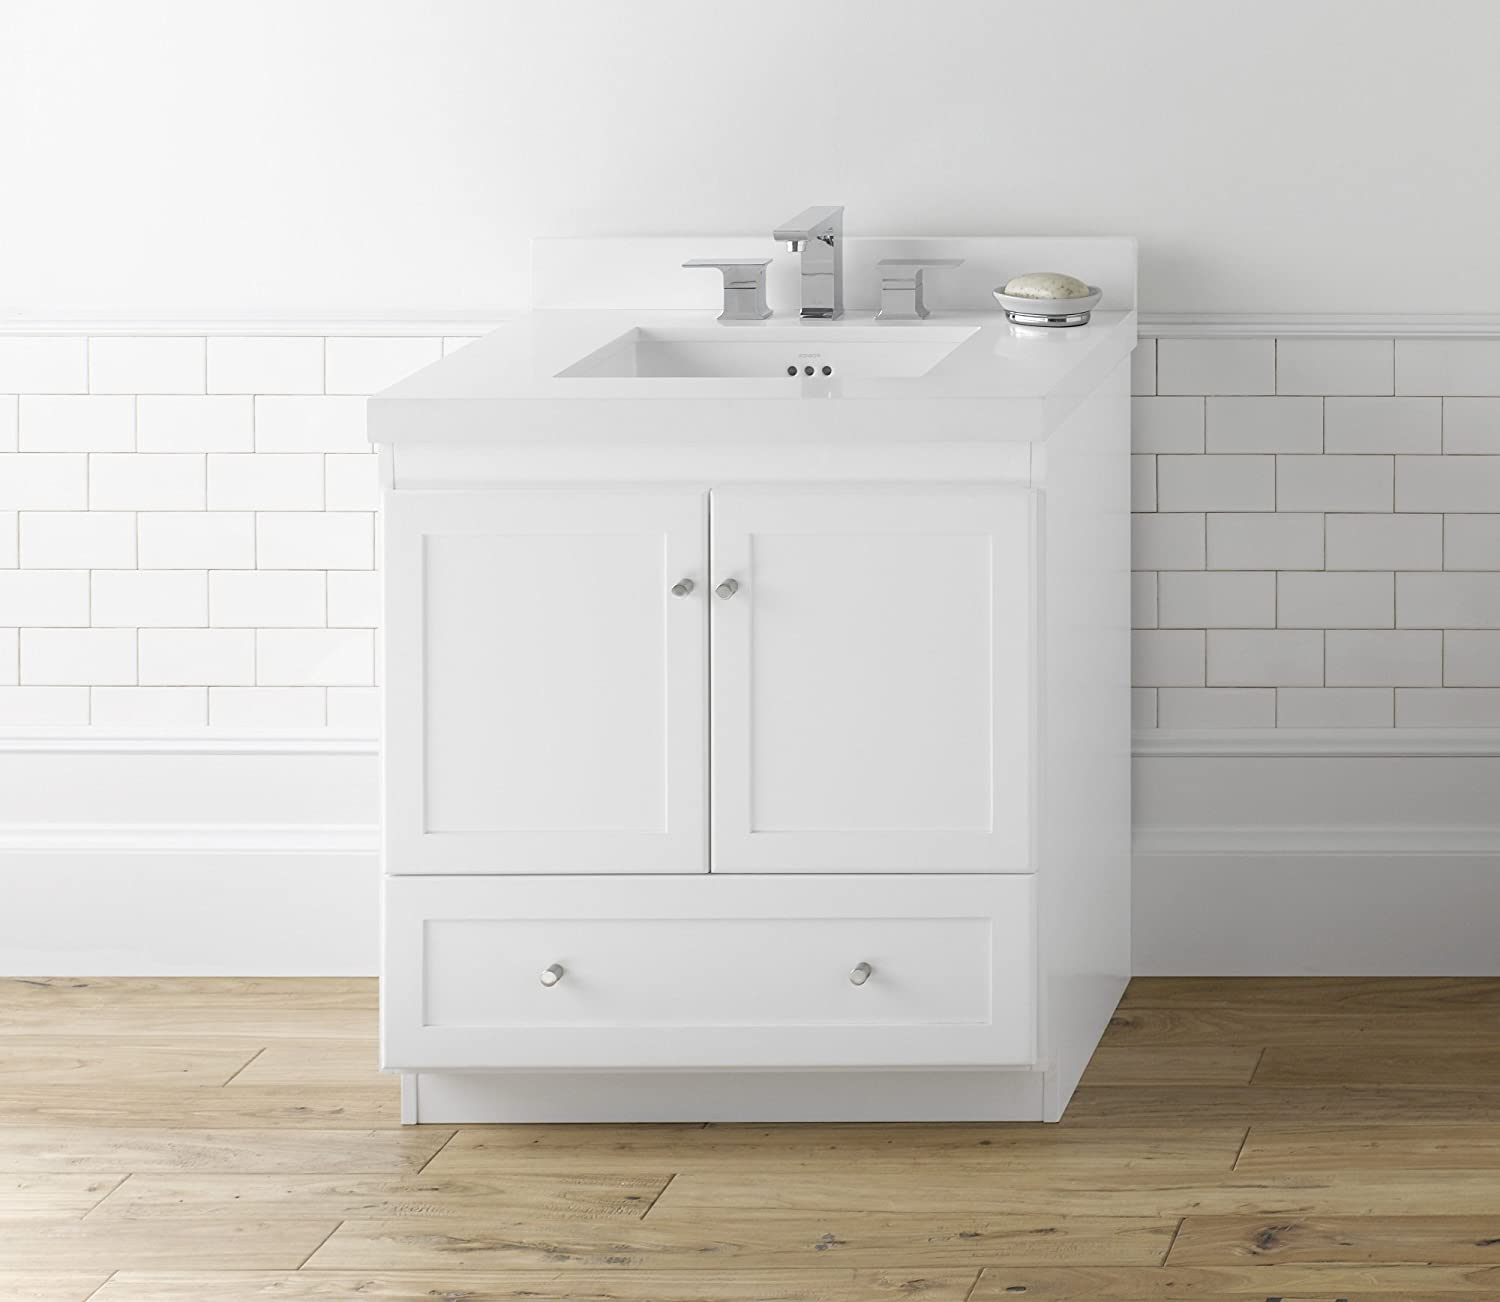 Ronbow Shaker 30 Inch Bathroom Vanity Base Cabinet With Soft Close Wood Door Cabinet Drawer And Adjustable Shelf In White 080830 3 W01 Amazon Com